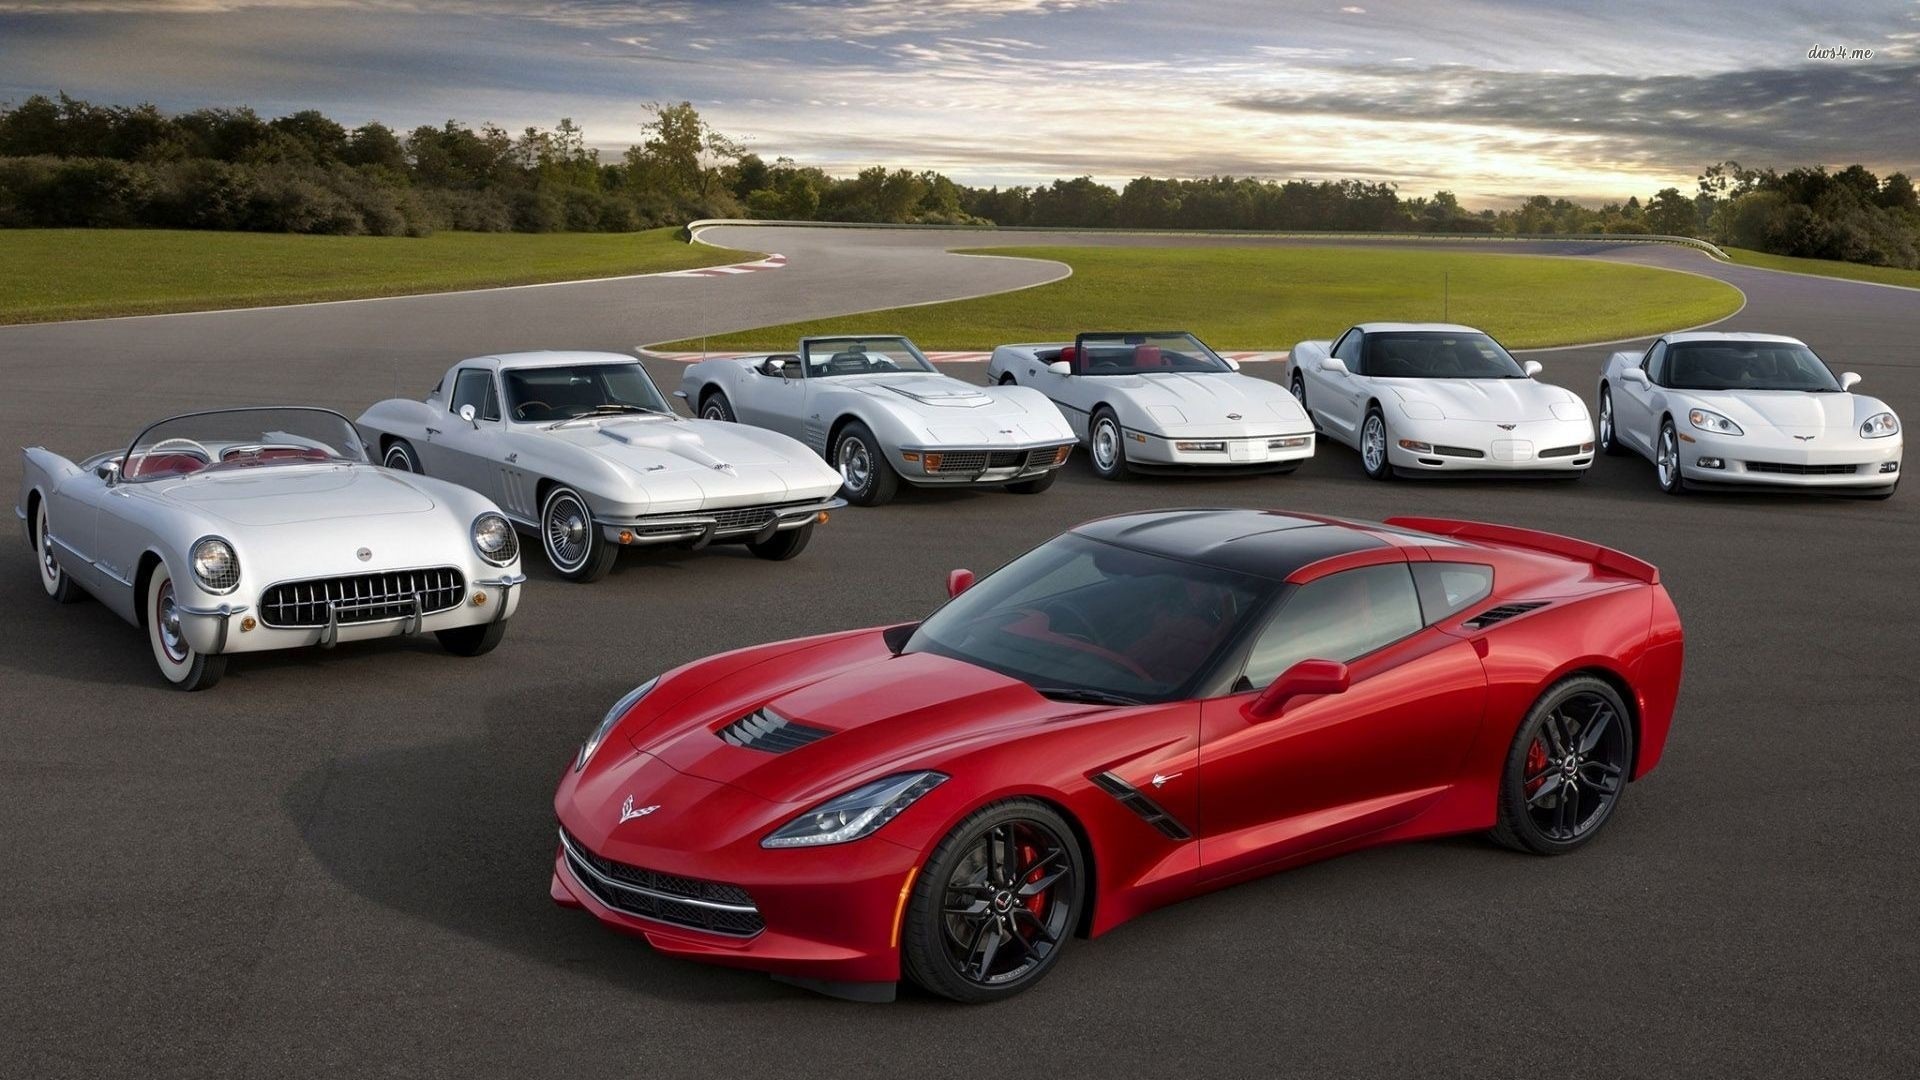 Corvette Stingray 2018 Wallpaper HD (74+ images)